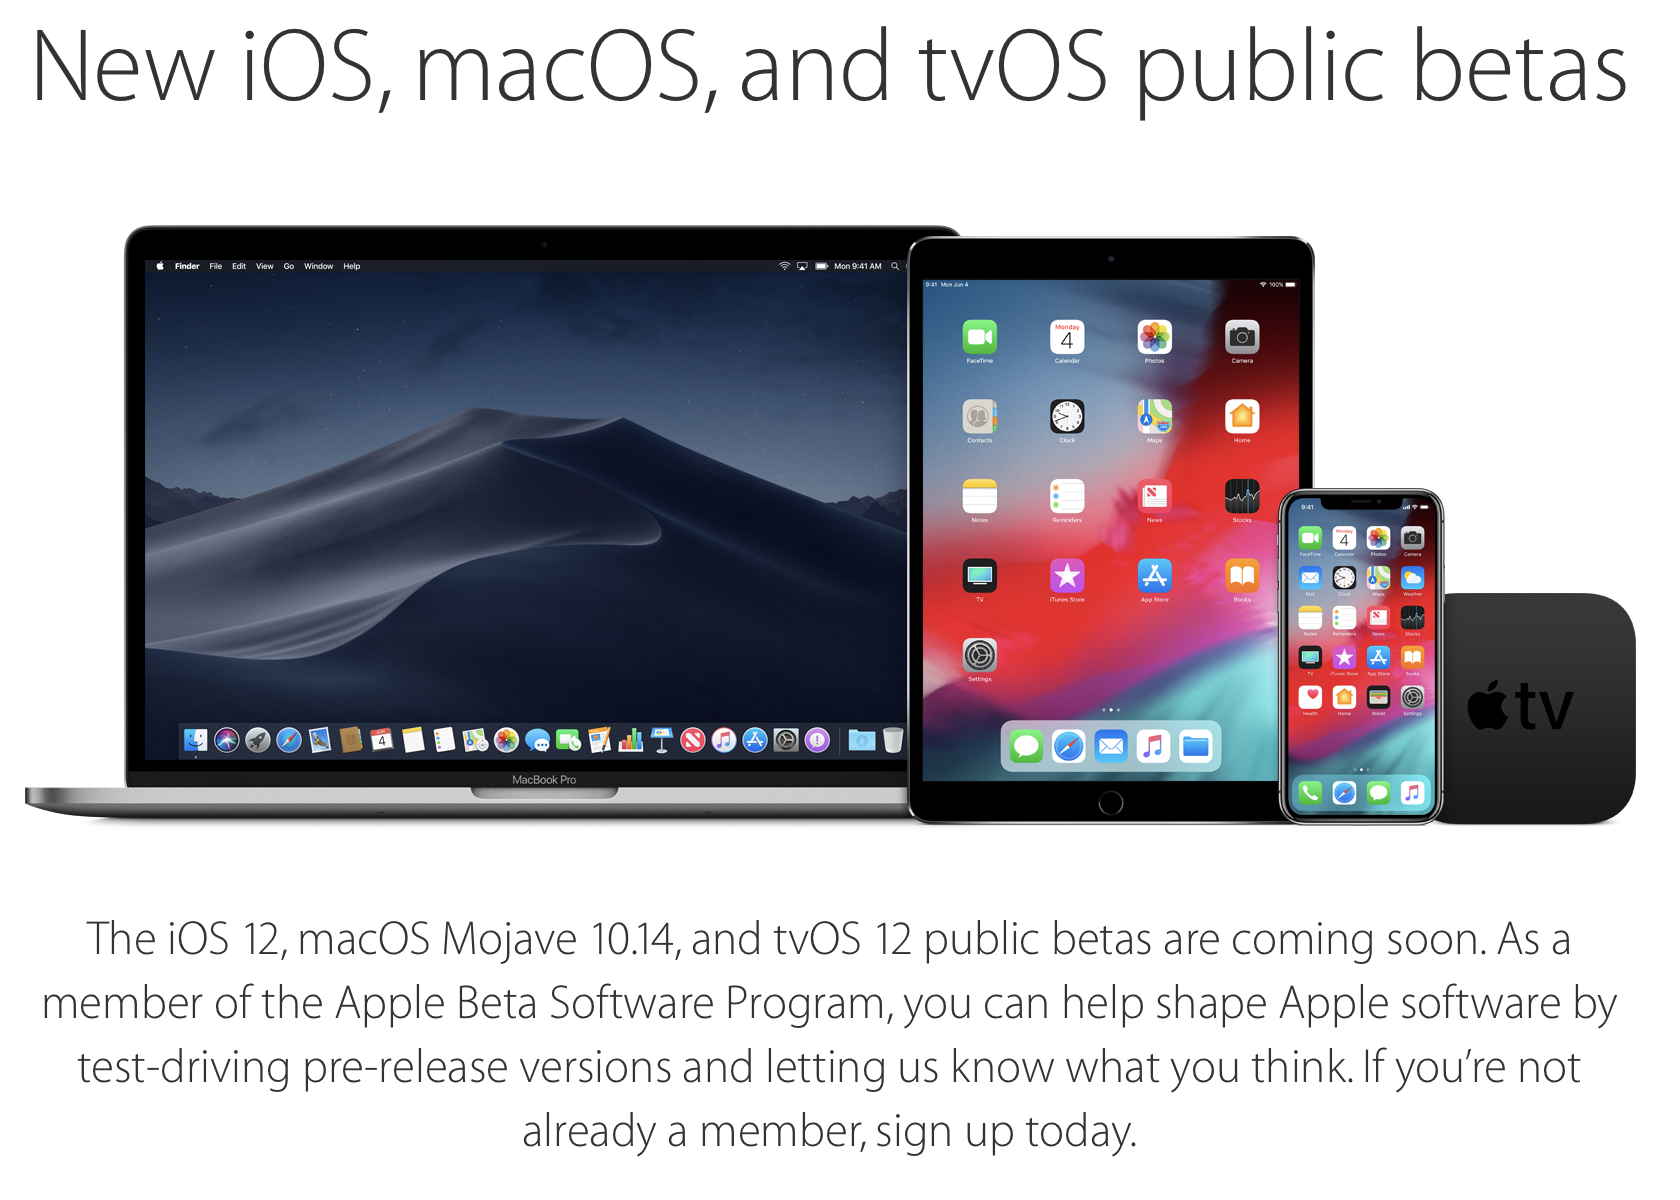 """Apple calls is beta releases """"pre-release versions"""" for good reason!"""